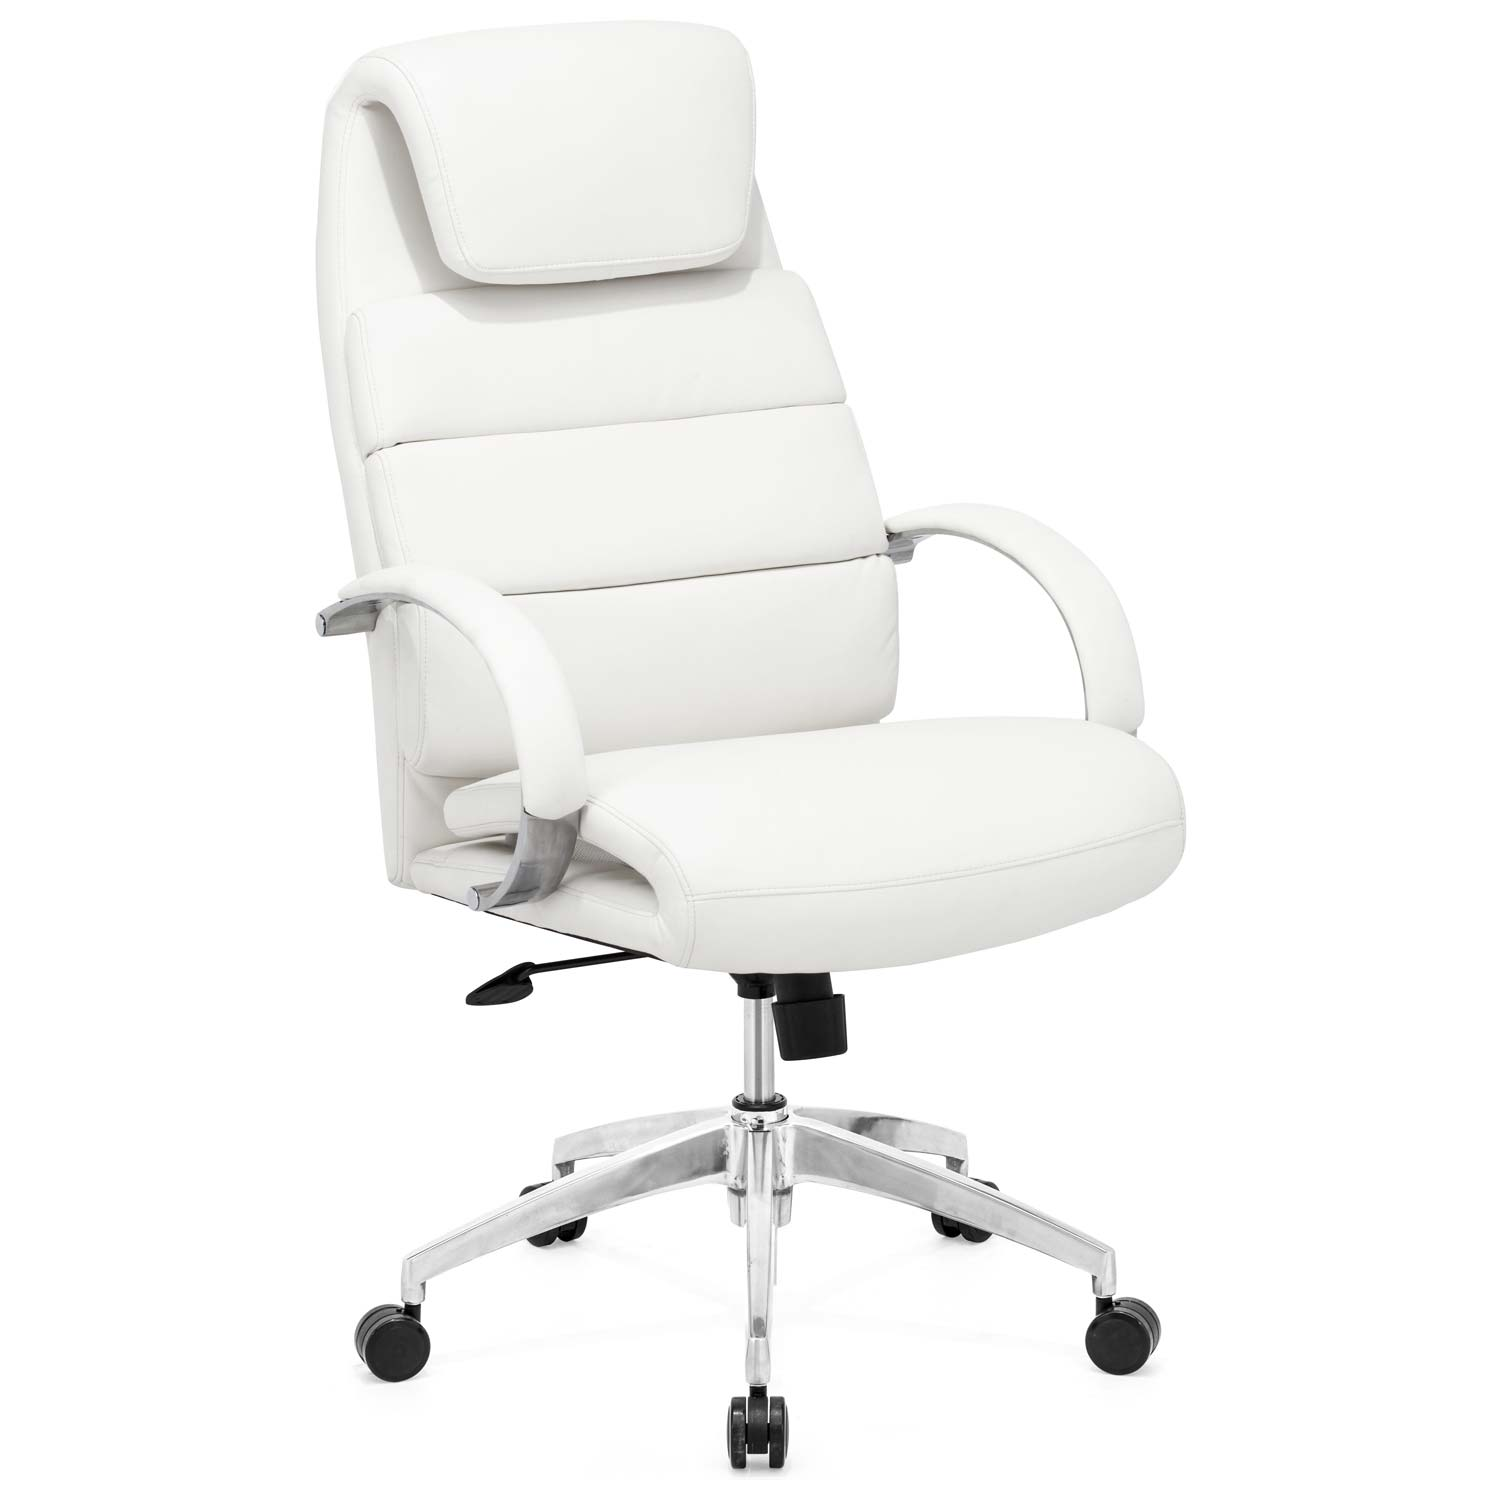 Lider Comfort Office Chair - Chrome Steel, White